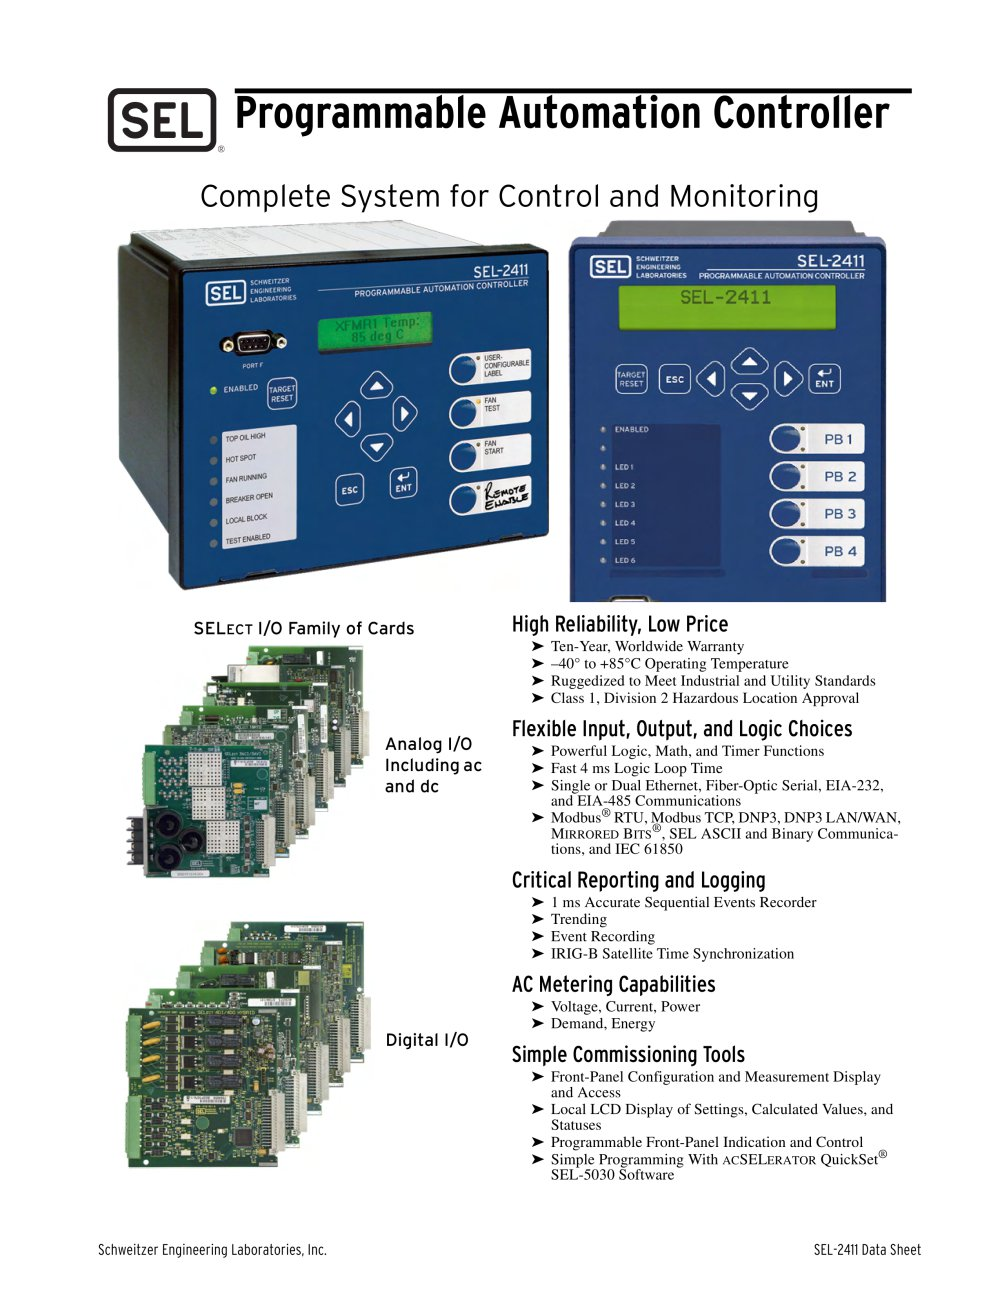 Sel 2411 programmable automation controller schweitzer engineering sel 2411 programmable automation controller 1 24 pages ccuart Gallery